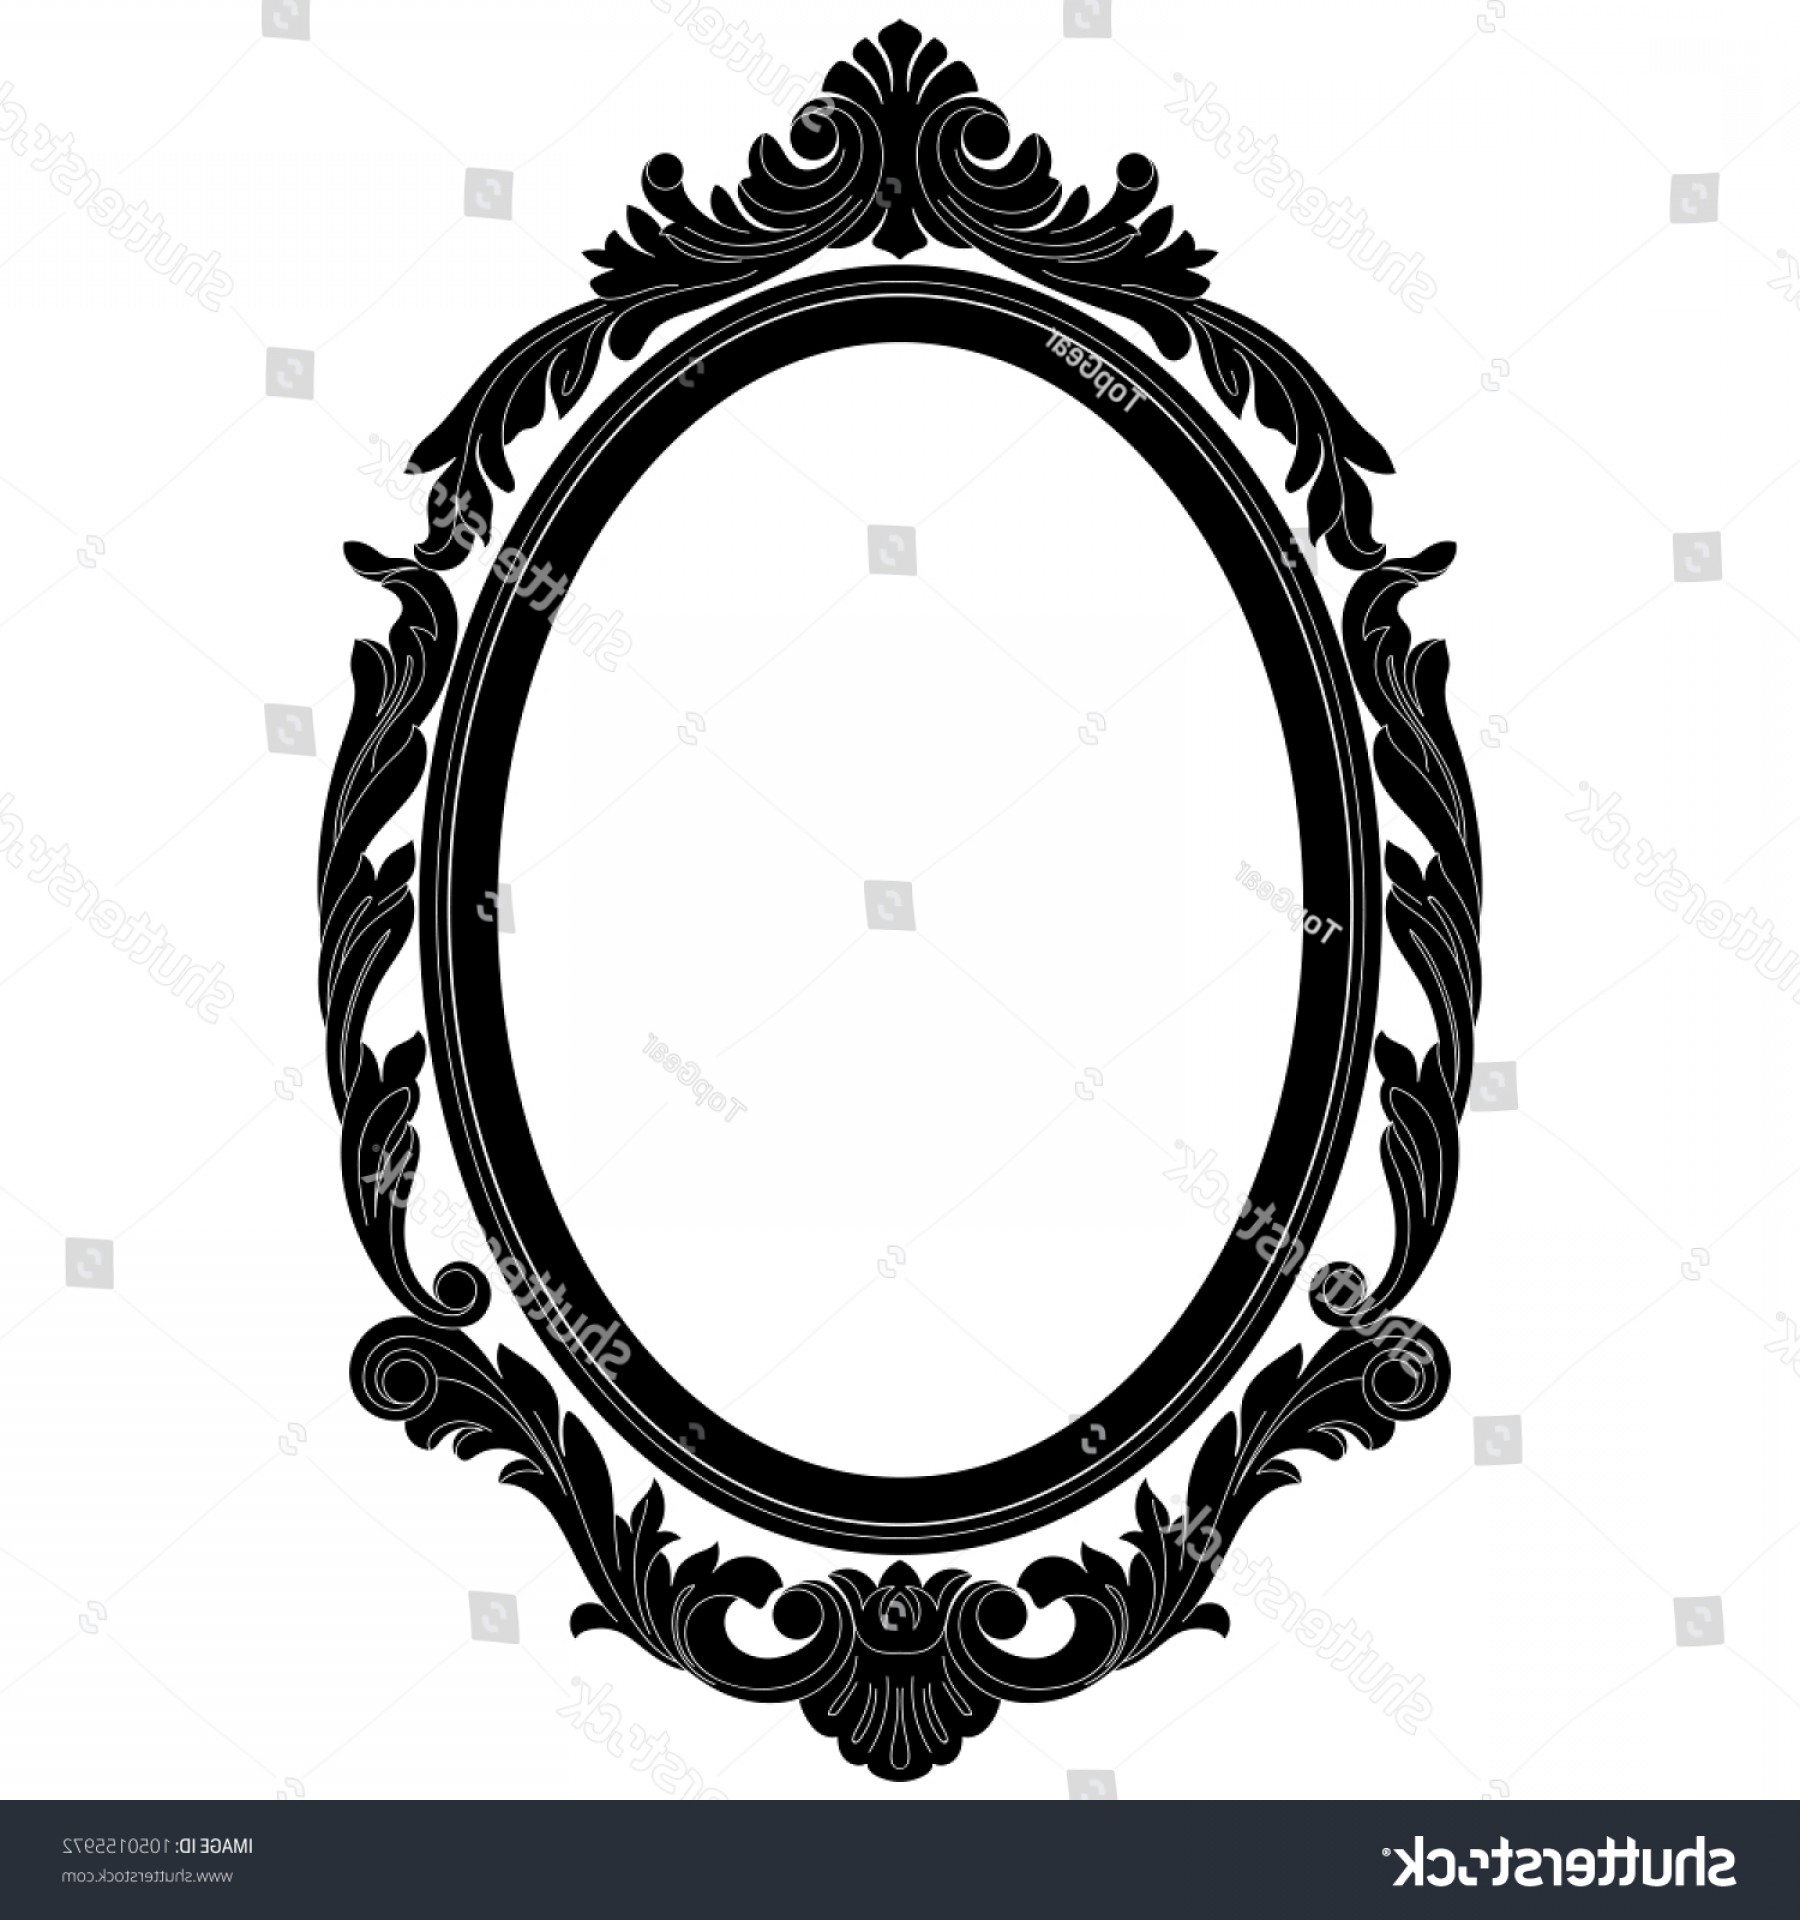 Filigree Oval Frame Vector: Oval Frame Vectoroval Border Vintage Engraving